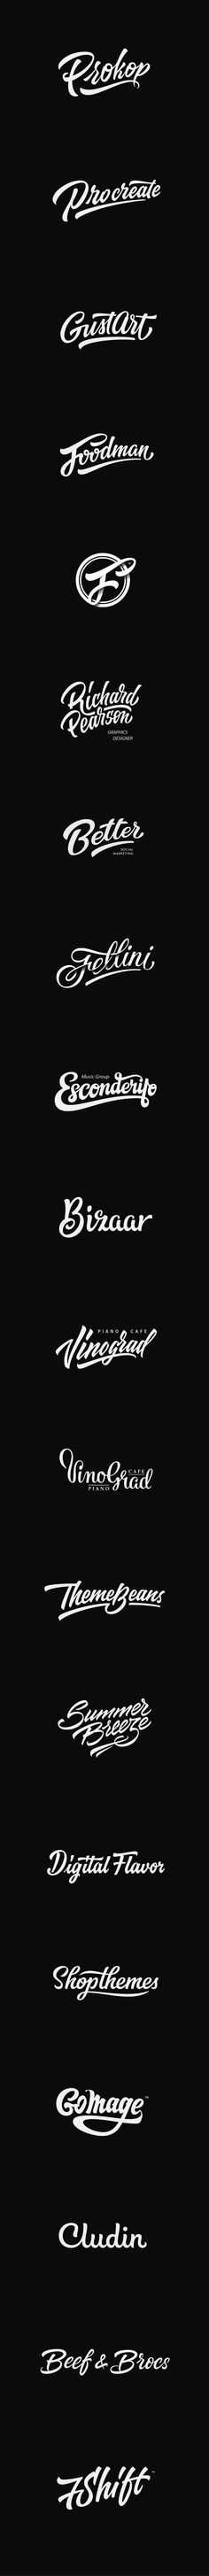 Lettering logotypes , compilation 1 on Behance